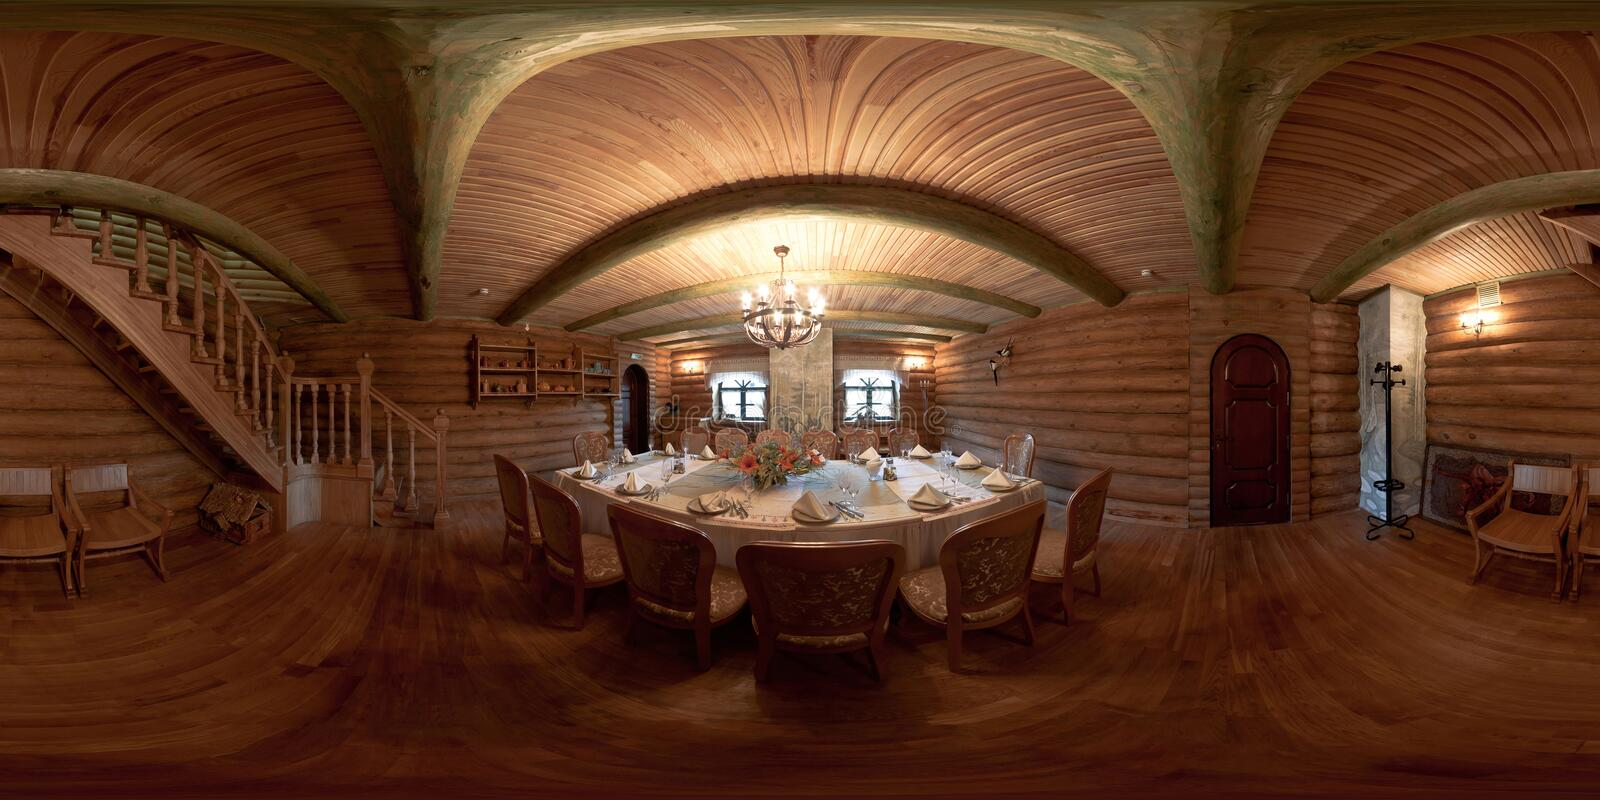 GRODNO , BELARUS - MAY 26, 2010: panorama inside interior of luxury stylish wooden banket hall. Full 360 degree seamless panorama. In equirectangular spherical royalty free stock images